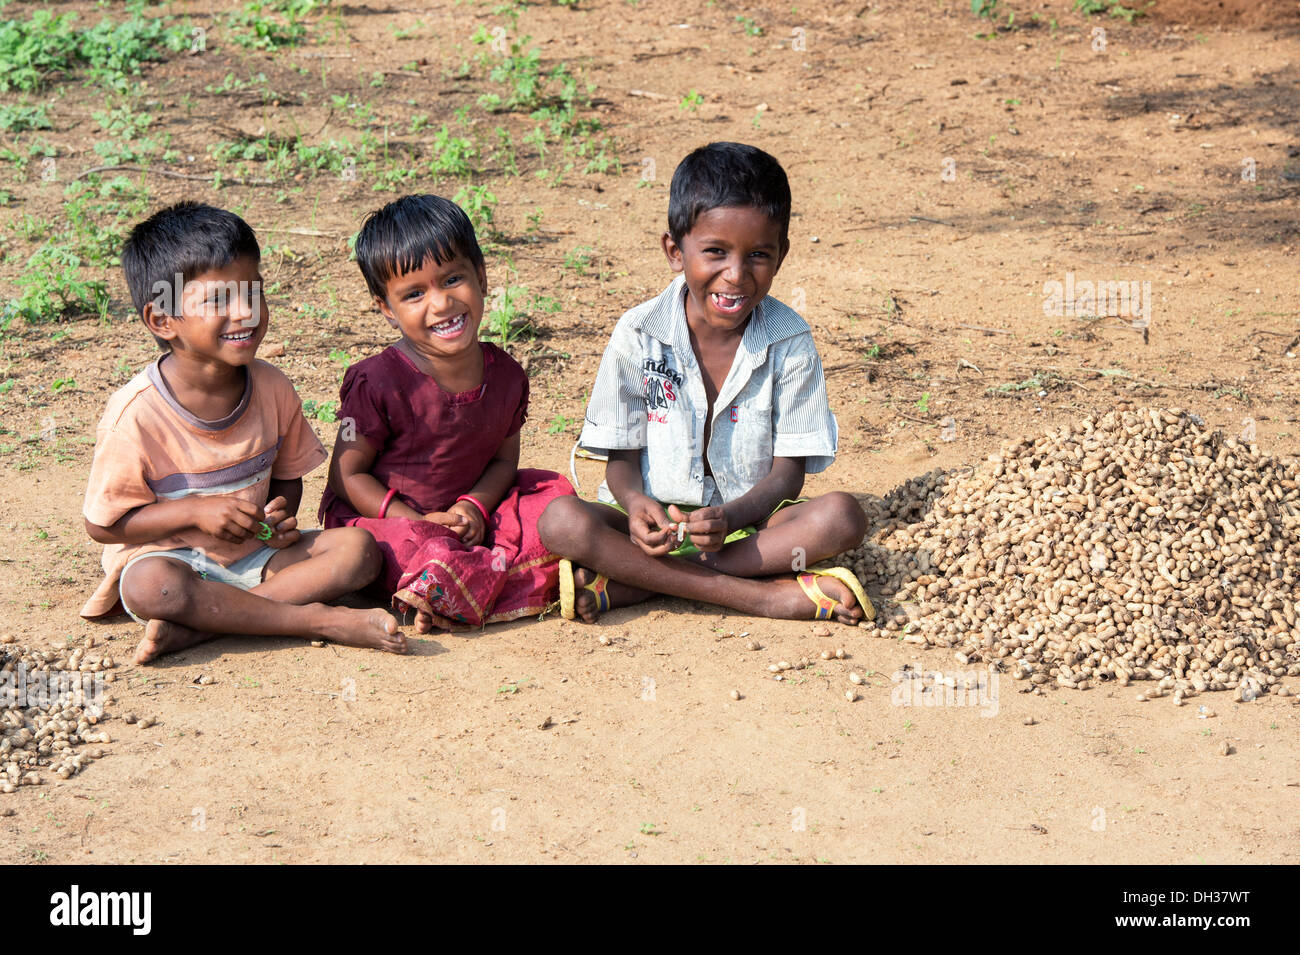 Young Indian village children sitting cross legged on the ground in a rural indian village. Andhra Pradesh, India - Stock Image